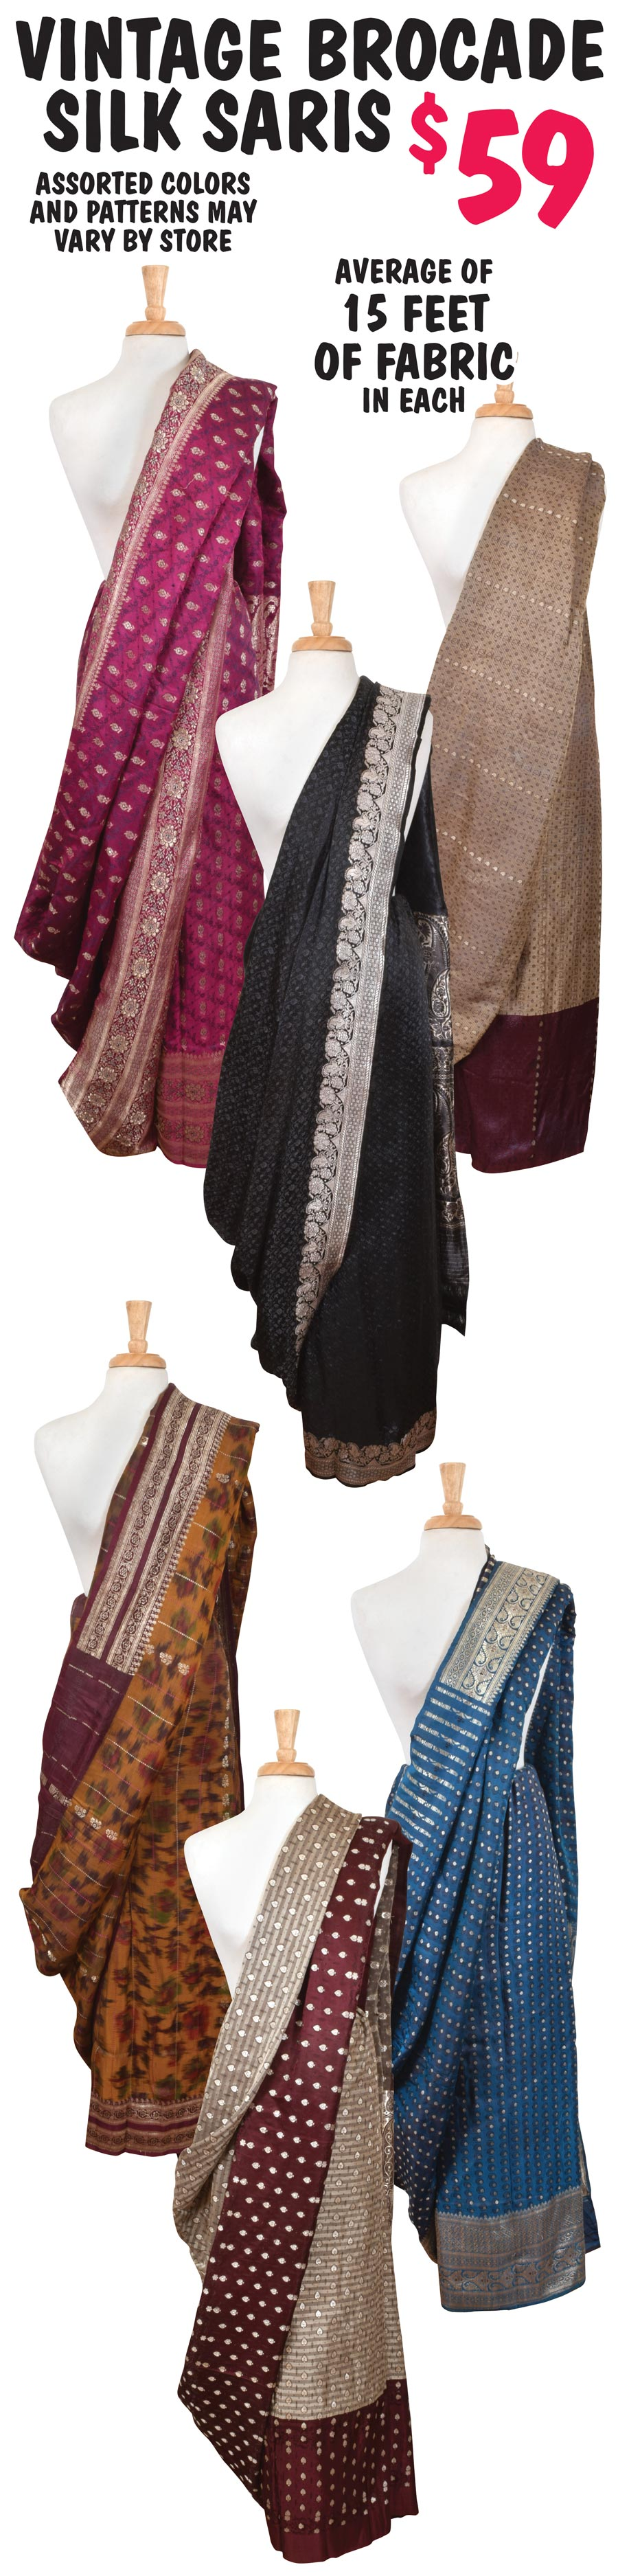 Vintage Brocade Silk Saris $59. Each piece is five to nine yards of luxurious brocade fabric.